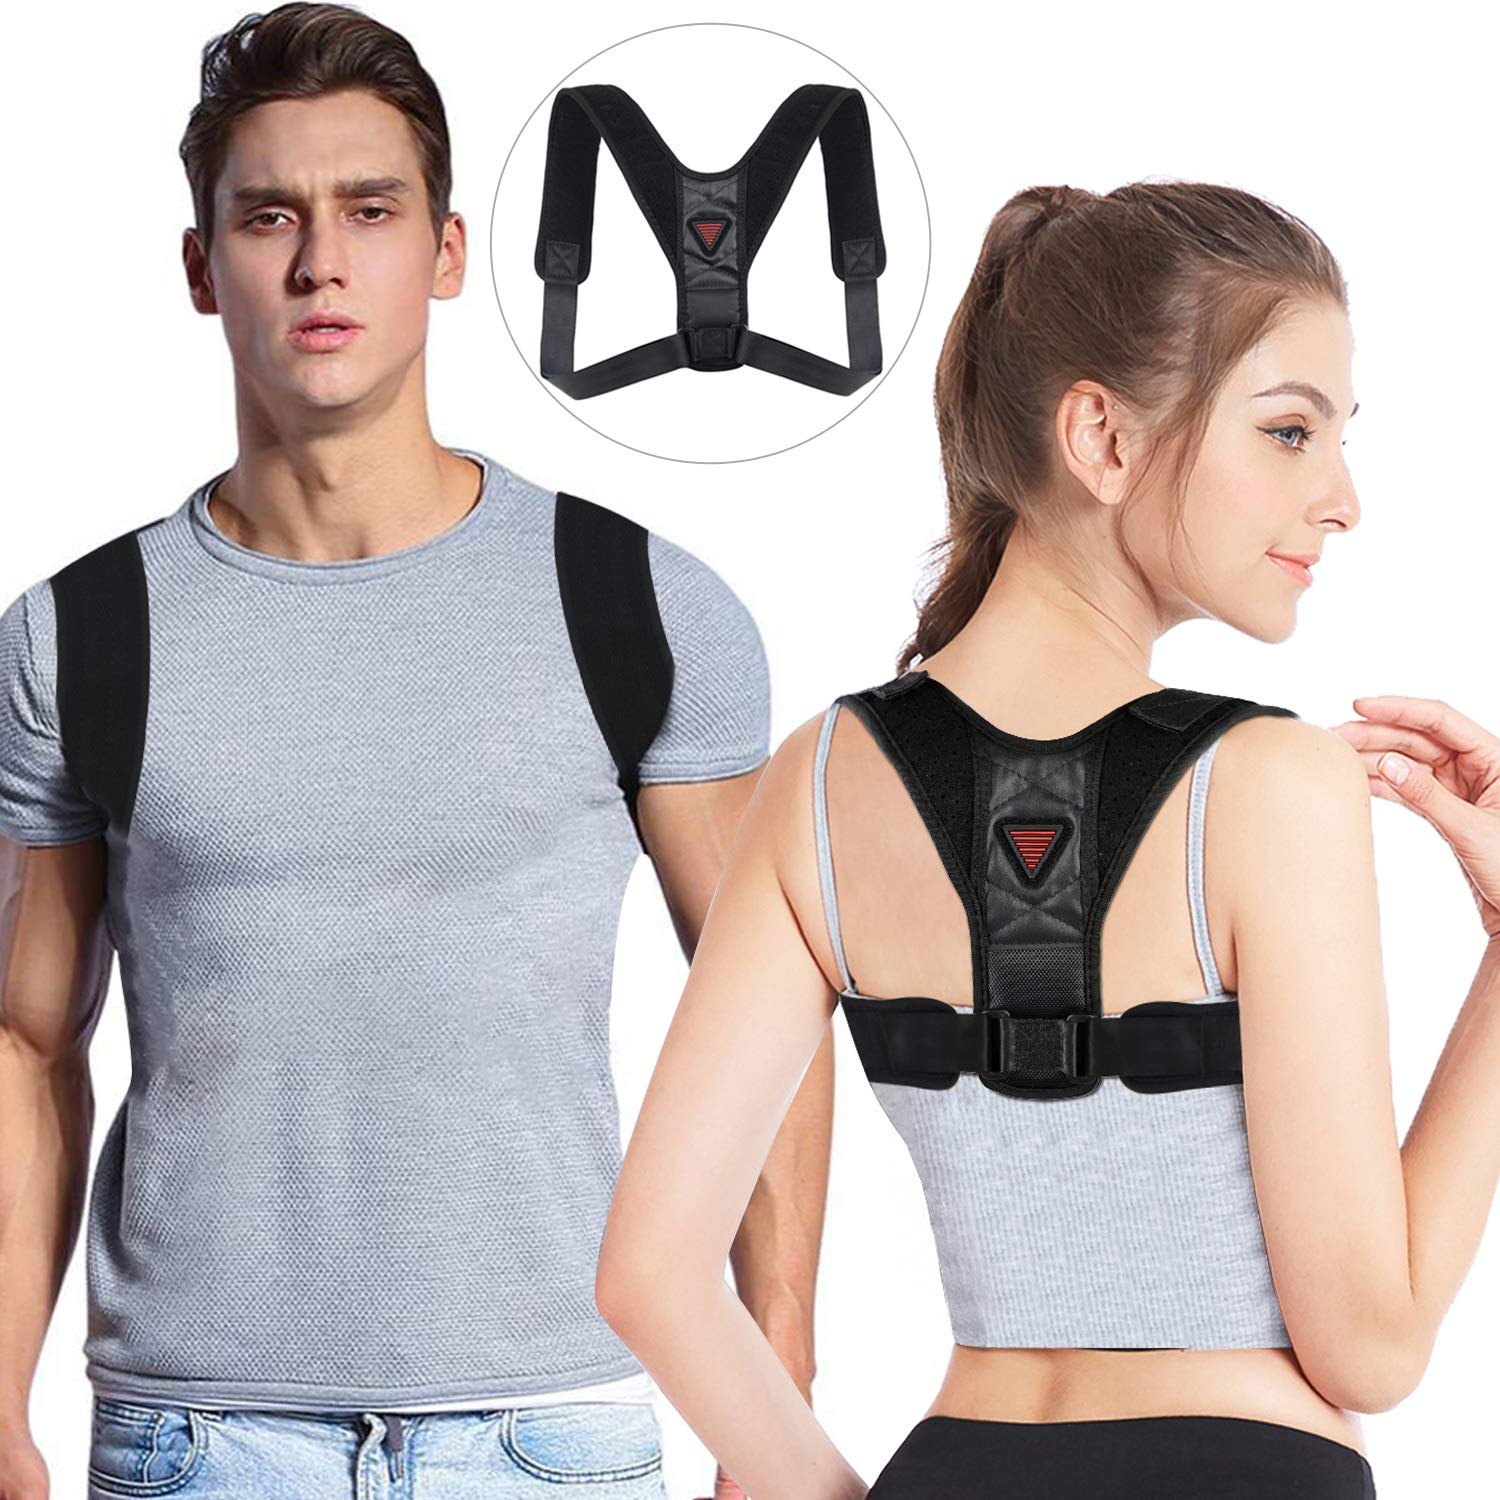 Posture Corrector for Men and Women, Upper Back Brace for Clavicle Support, Adjustable Back Straightener and Providing Pain Relief from Shoulder, Neck & Back-Black by ZOUYUE